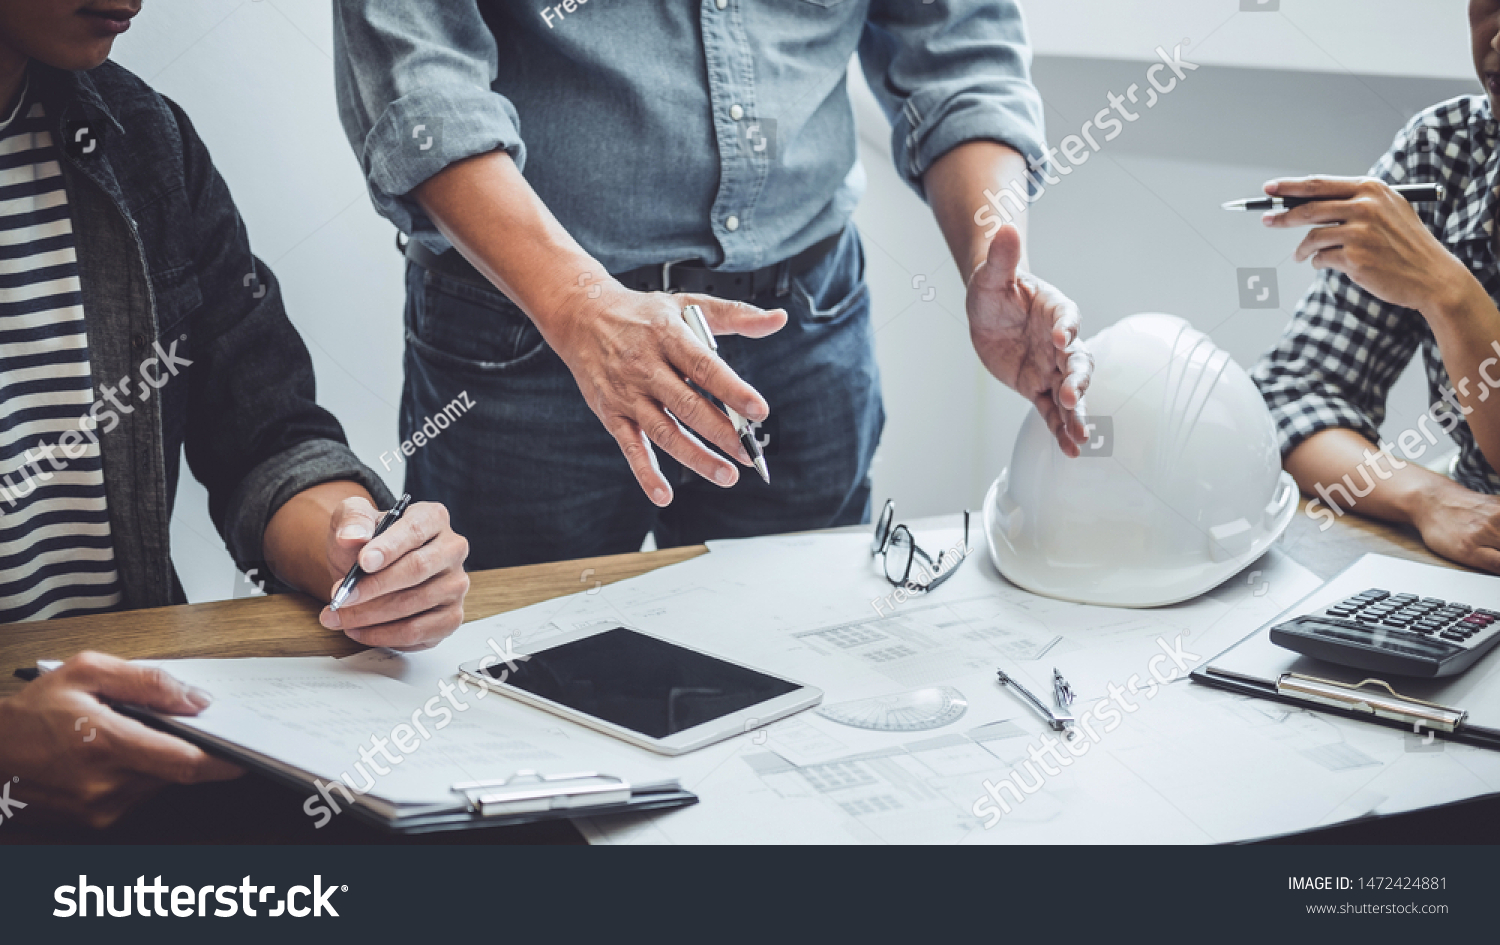 Construction and structure concept of Engineer or architect meeting for project working with partner and engineering tools on model building and blueprint in working site, contract for both companies. #1472424881